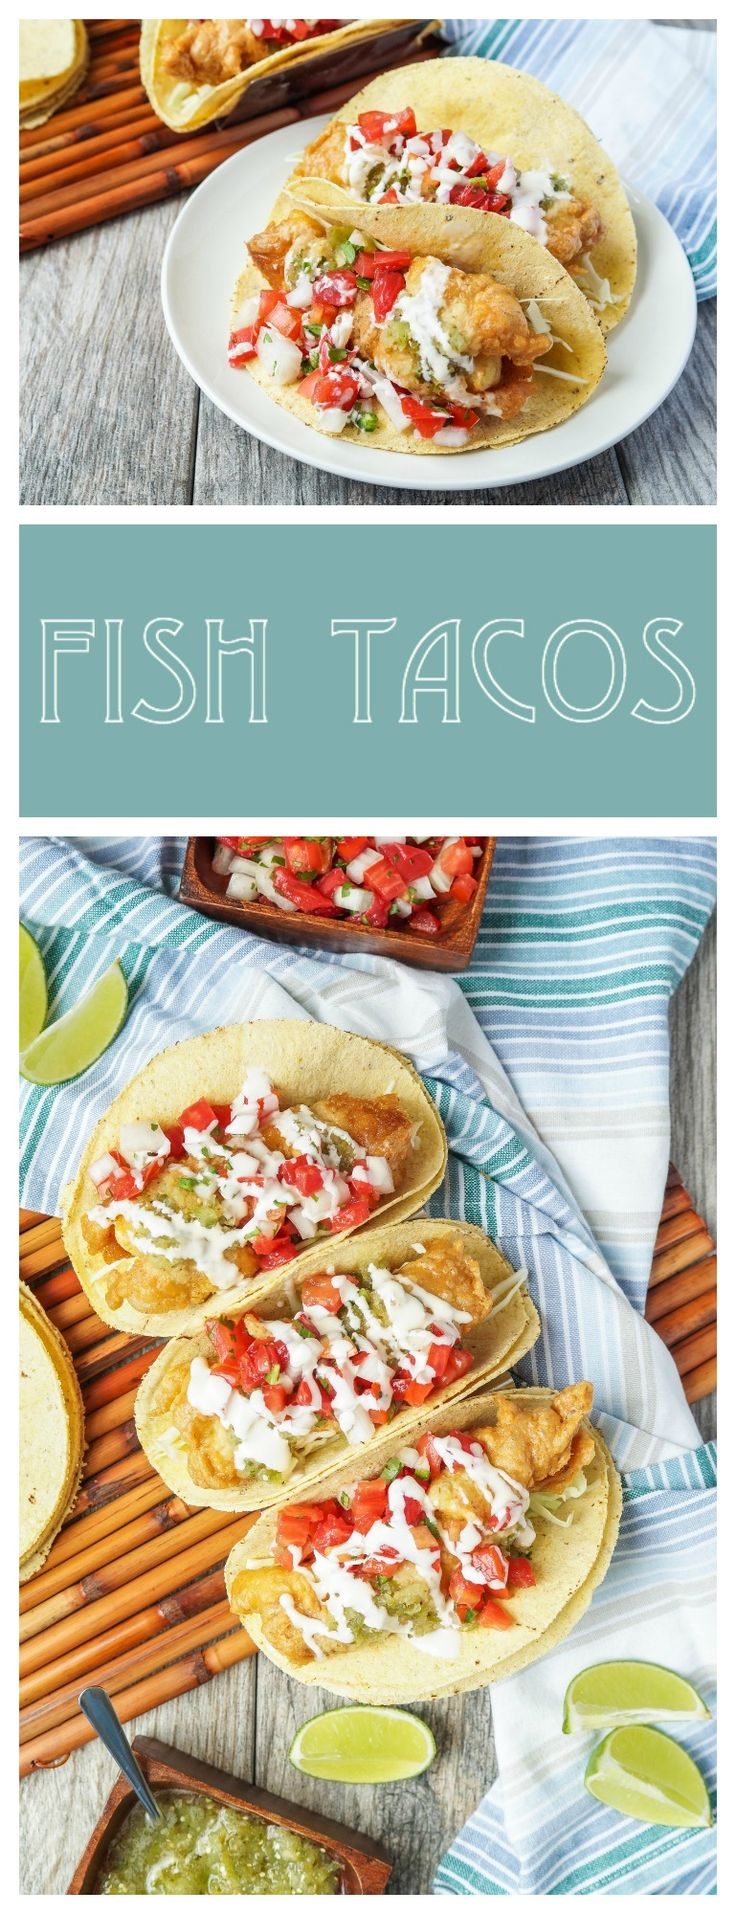 113 best Everything Seafood images on Pinterest | Seafood recipes ...